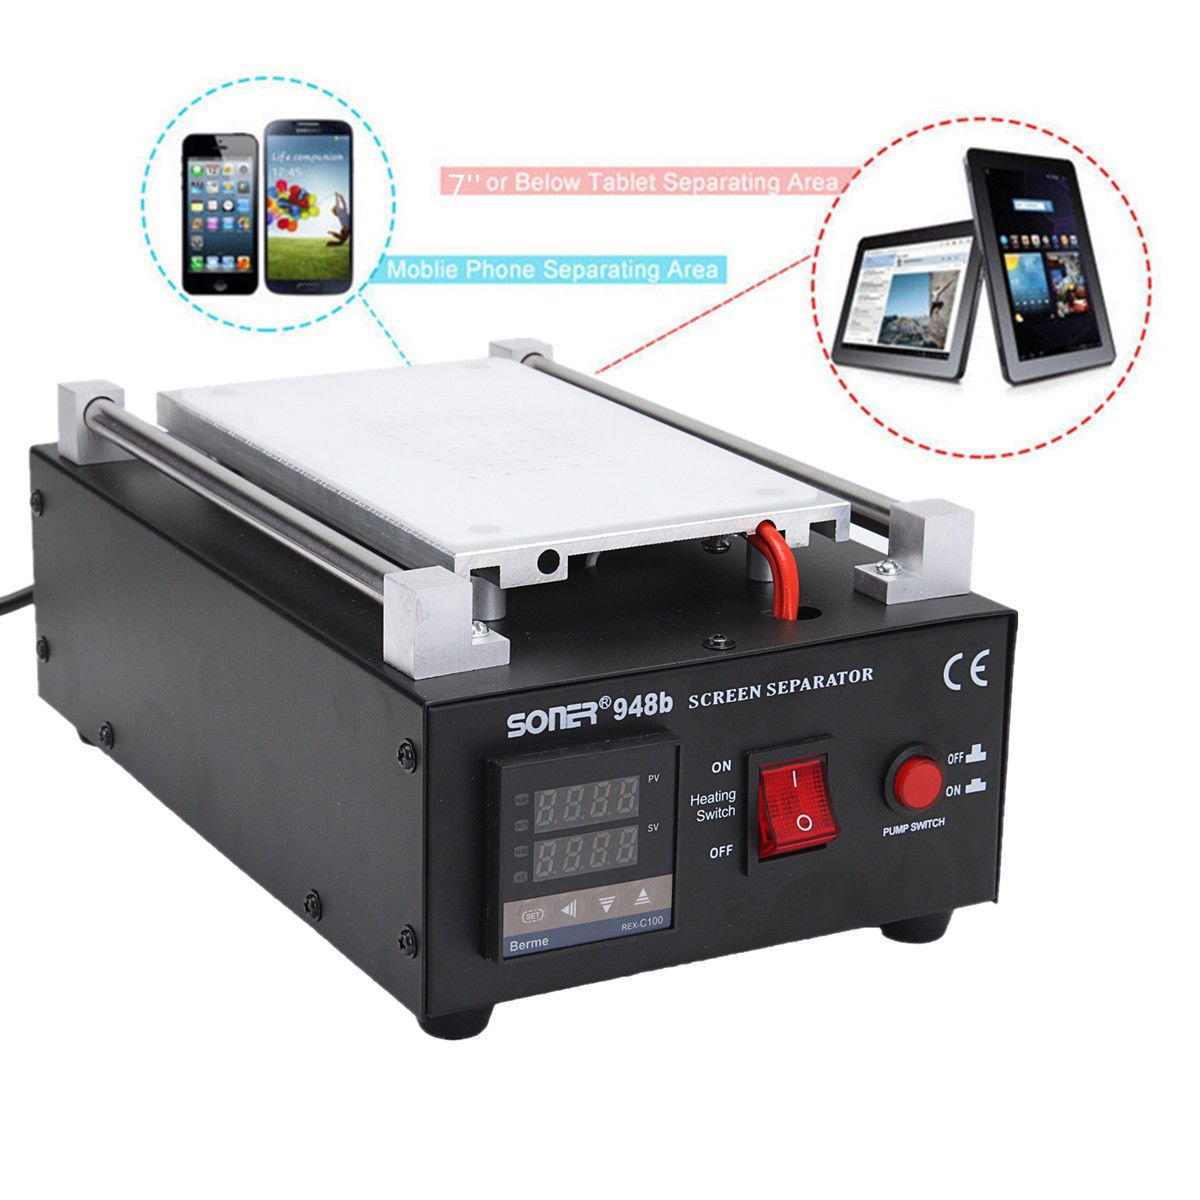 YaeTek iMAX LCD Screen Separator Machine Touch Screen Digitizer Removal Cell Phone LCD Glass Plate Build-in Pump Vacuum Repair LCD Screen for Smart Mobile Phone 7 Inch and Below Yaemart Corportation